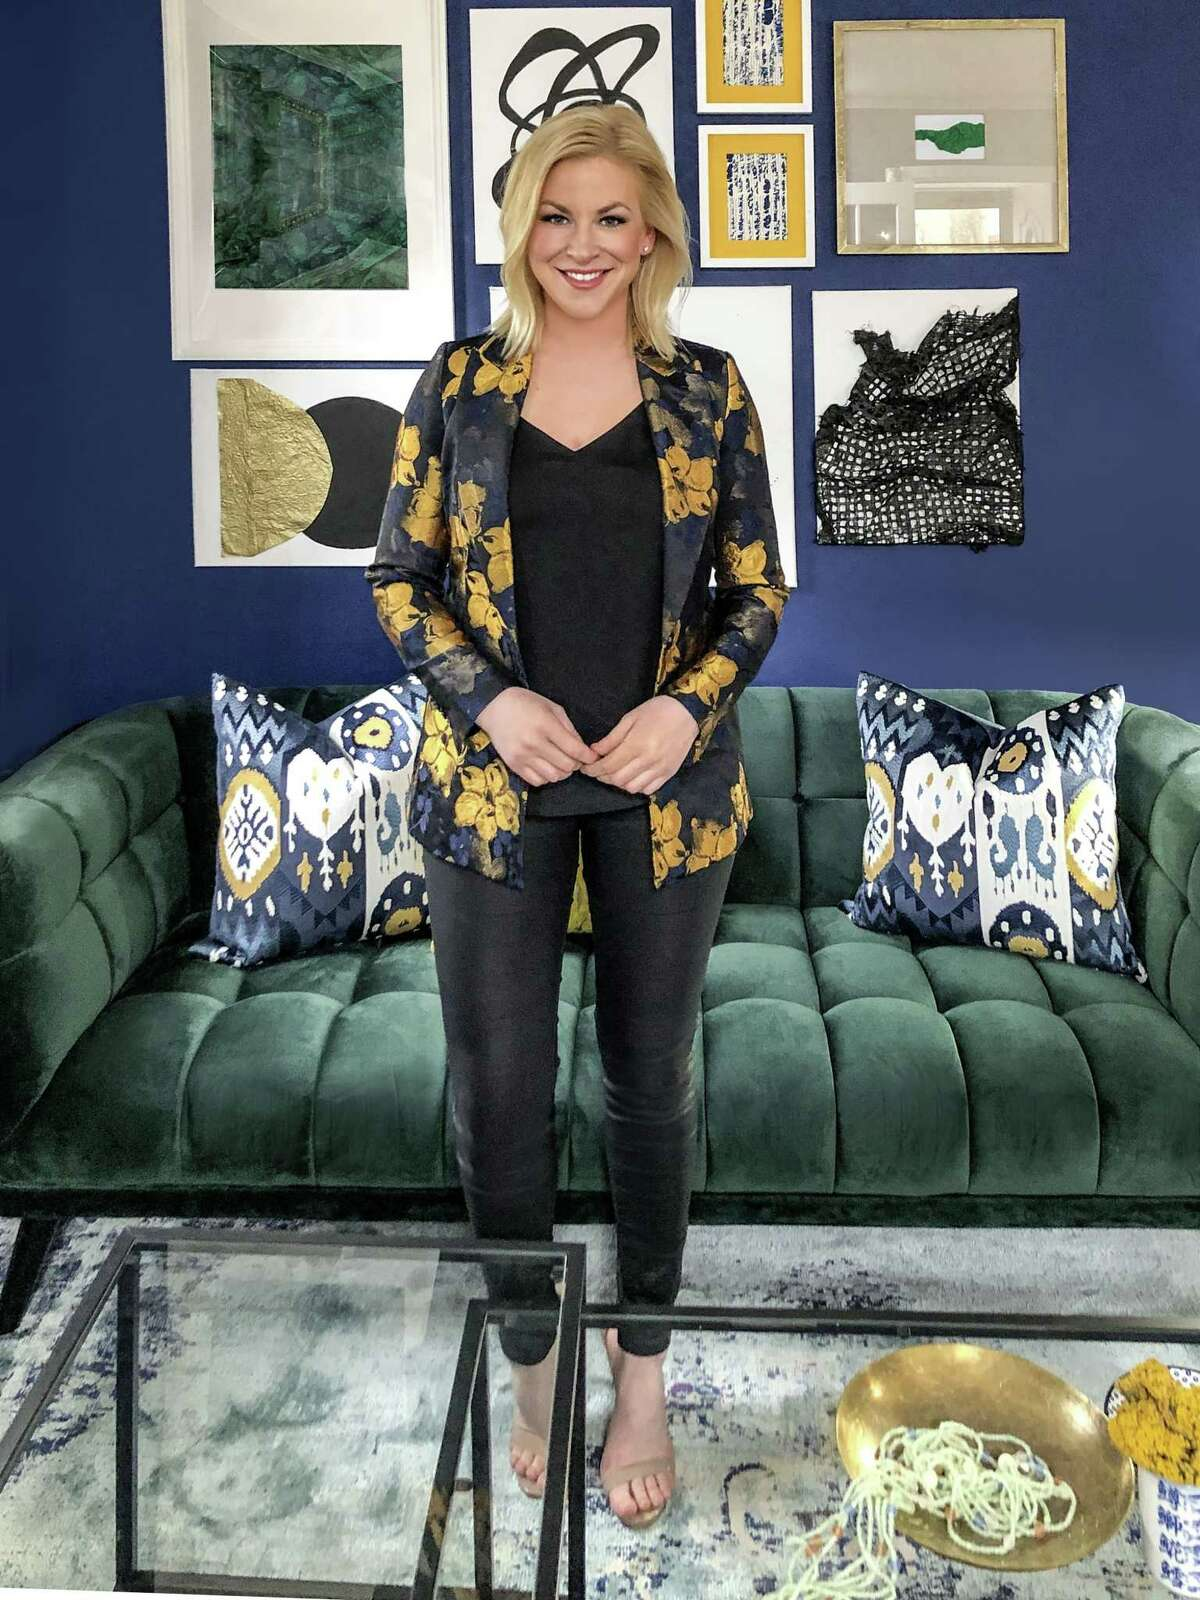 """Taylor Spellman is the star of HGTV show """"One Week to Sell."""" Her inspiration and insighful ideas are great for people looking to be more conscious about their interior décor choices."""